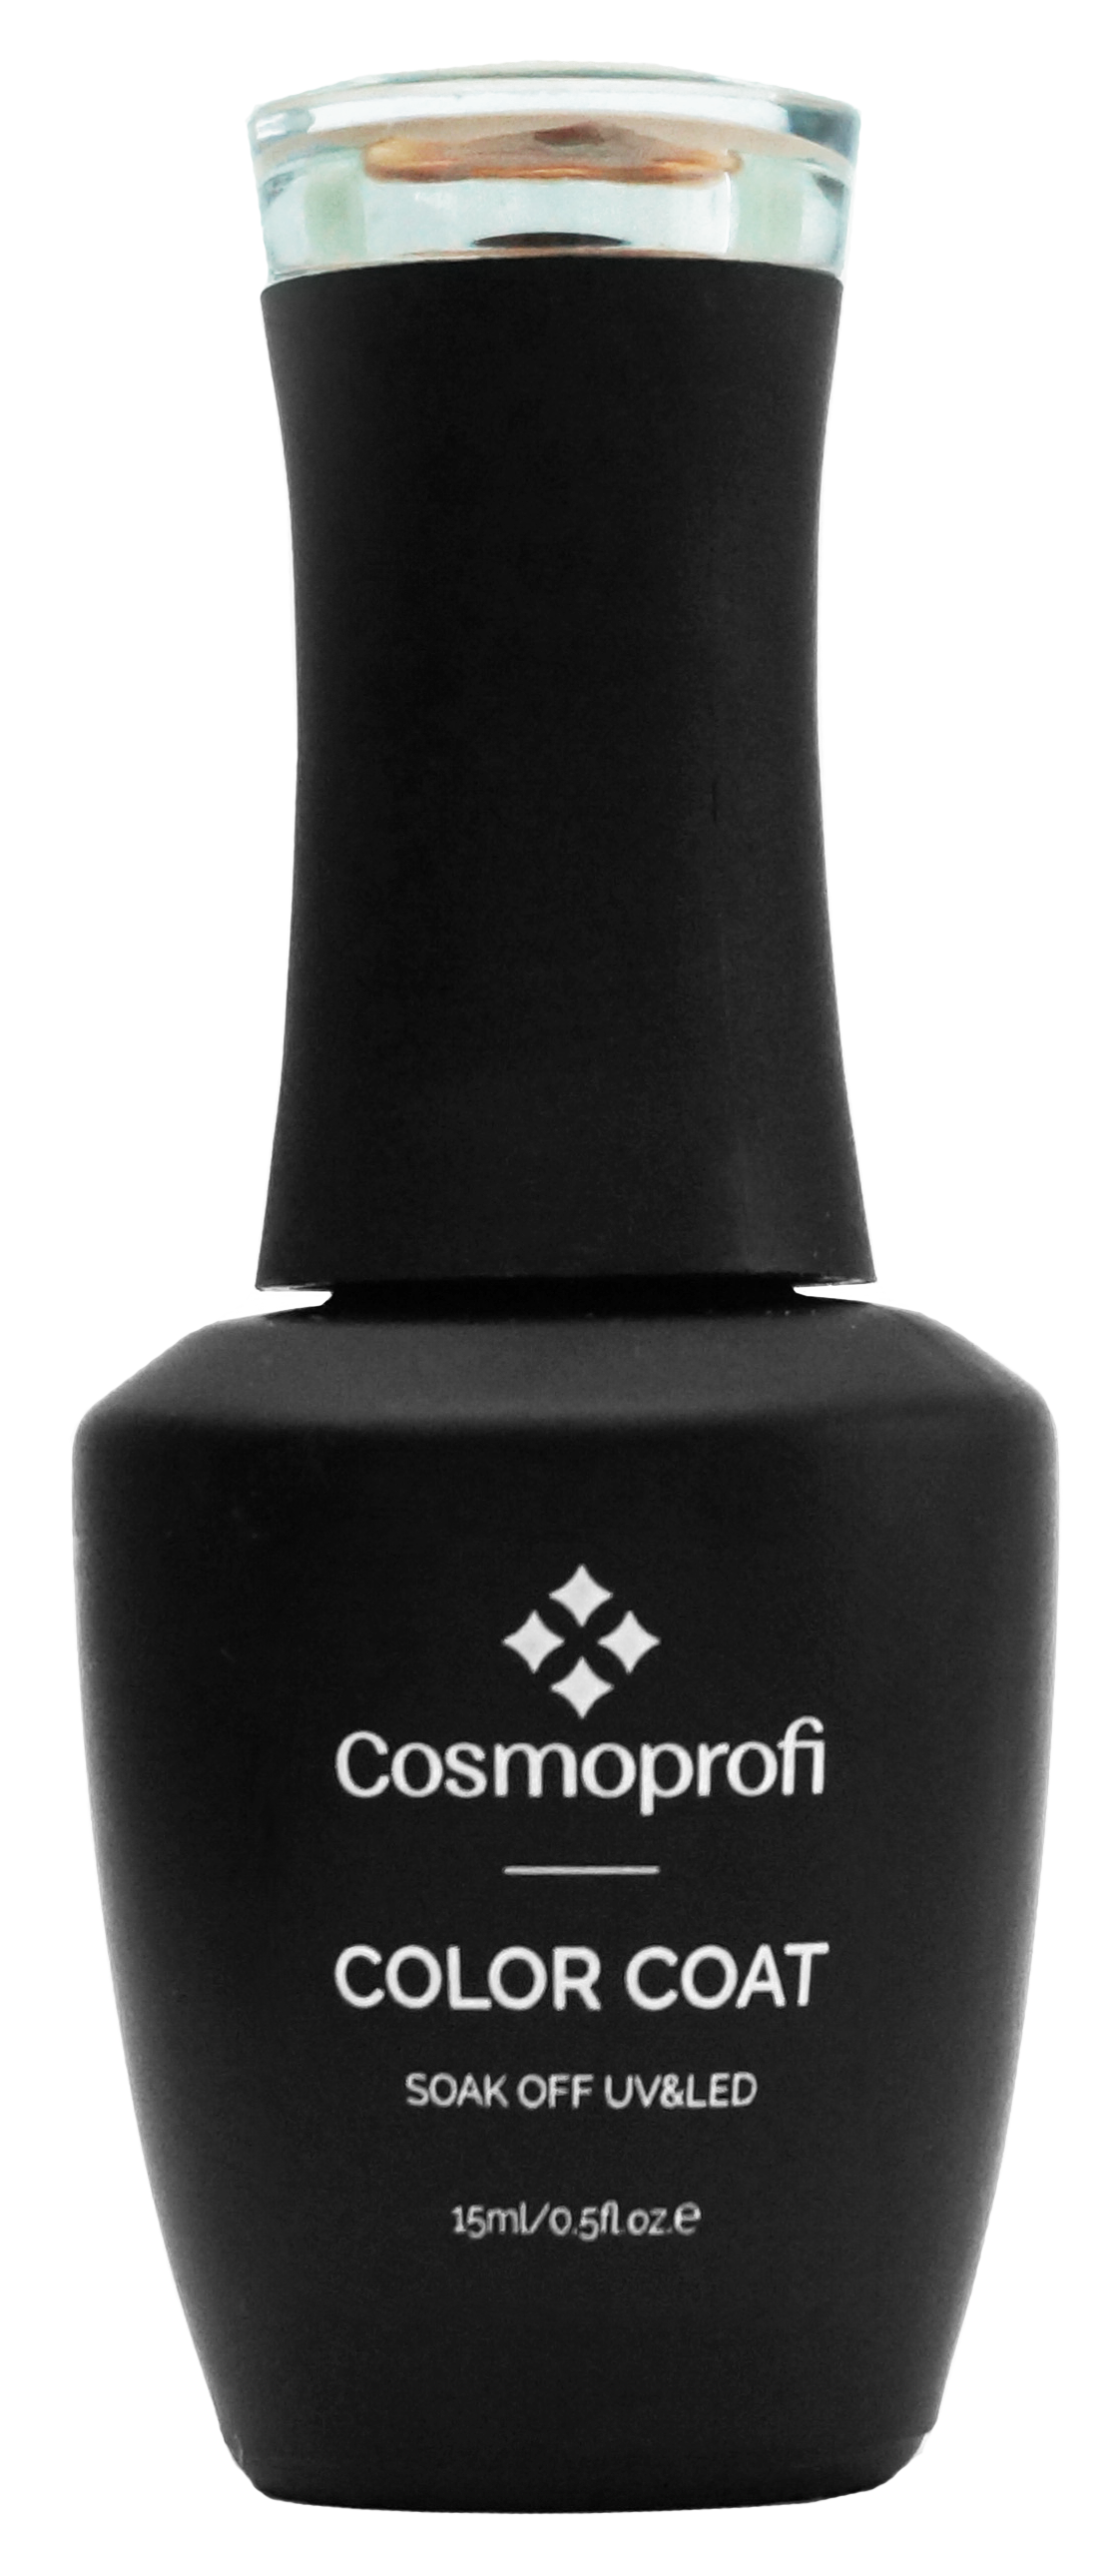 Гель-лак Cosmoprofi, Color coat № 247, 15 мл